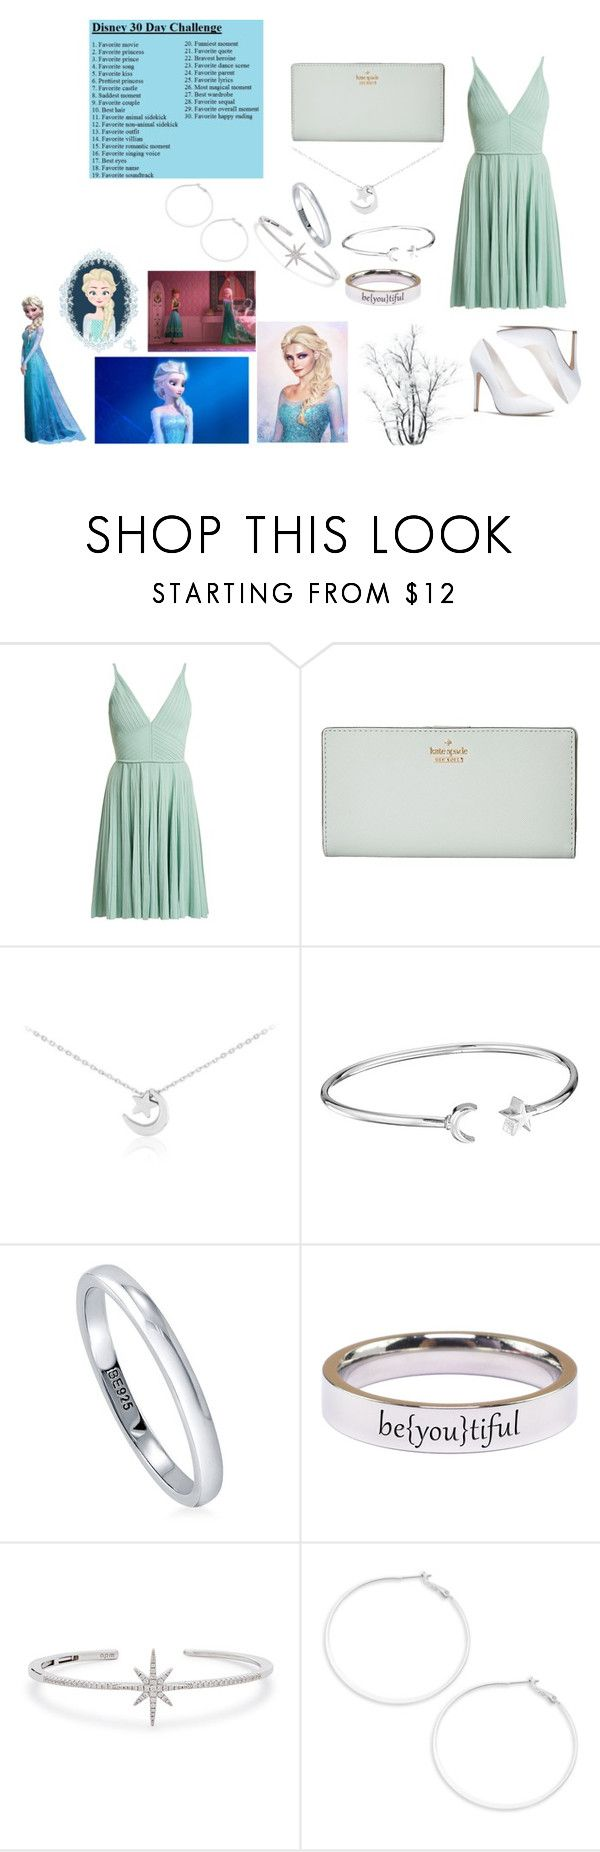 """""""Day 29- Favorite overall moment: Elsa unfreezing Anna"""" by catie-hamilton227 ❤ liked on Polyvore featuring Disney, Elie Saab, Kate Spade, Alex and Ani, BERRICLE, Pink Box, APM Monaco, Design Lab, disney and disneybound"""